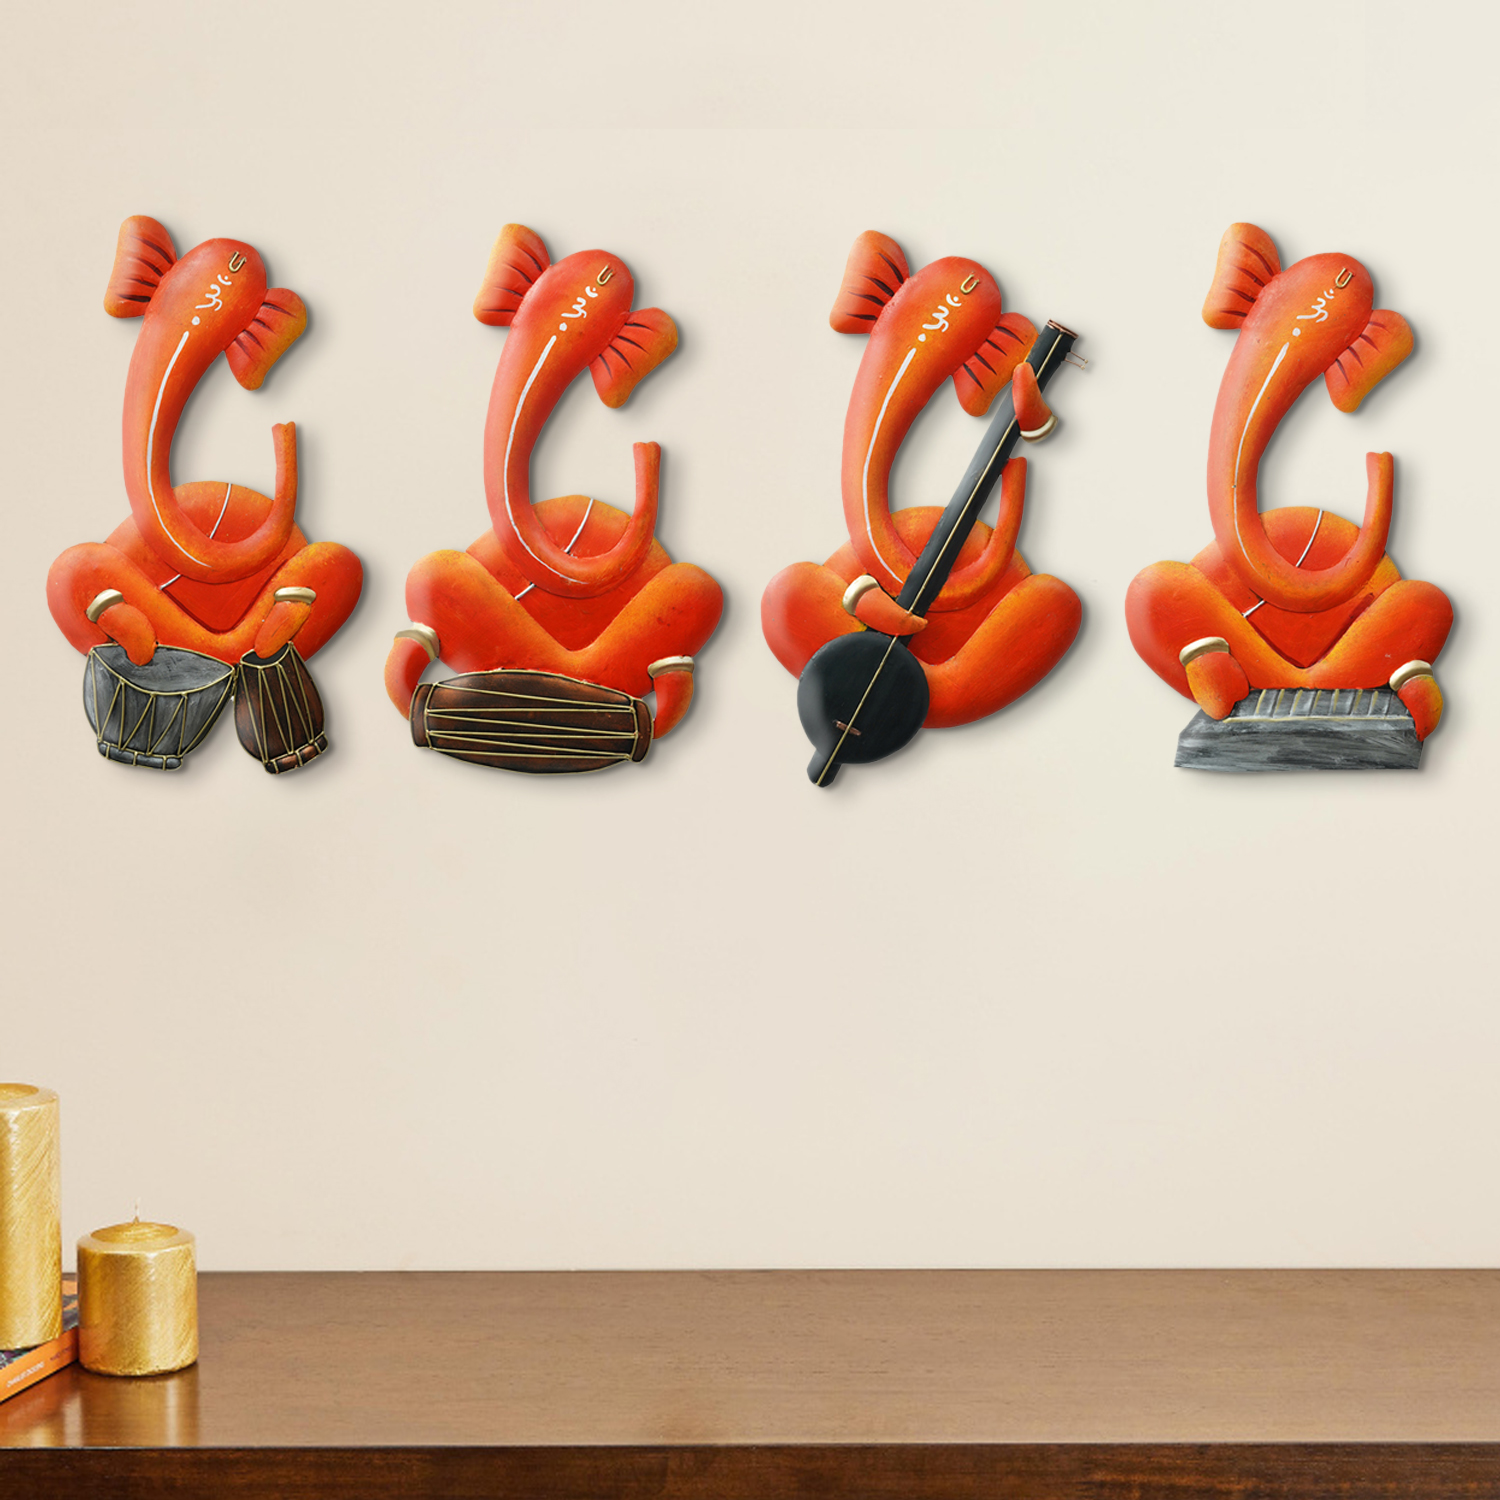 Set of 4 Musician Lord Ganesha Handcrafted Iron Wall Hangings Indian Home Decor